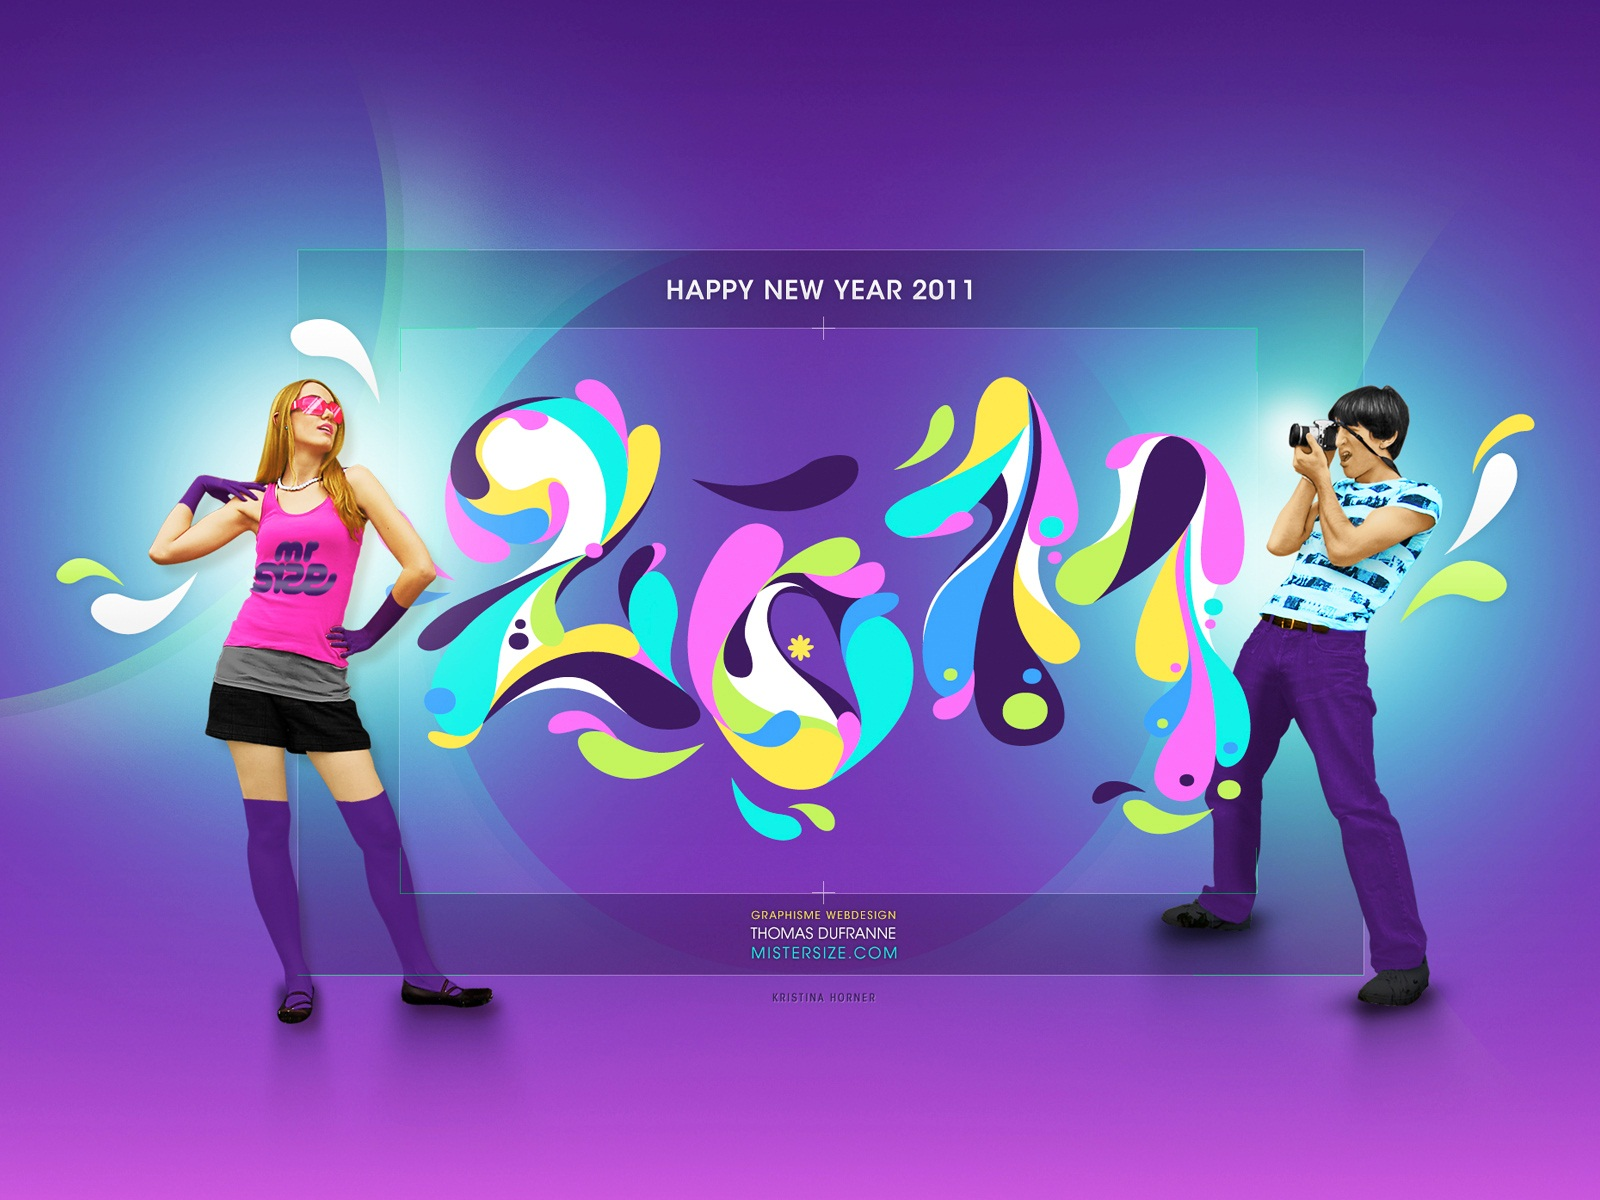 Happy New Year 2011 HD 197.28 Kb